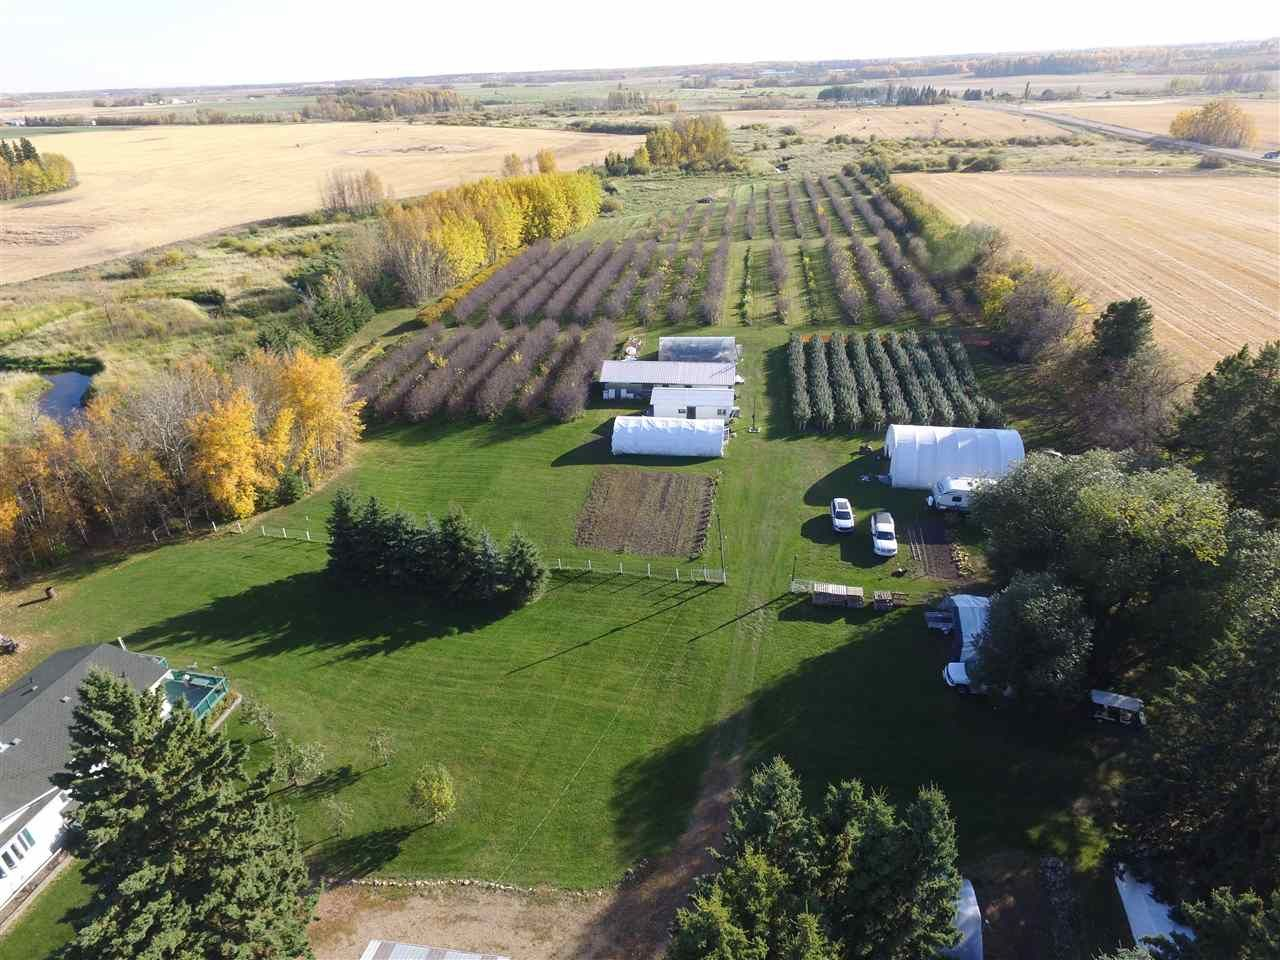 Photo 10: Photos: 265073 Twp Rd 472A: Rural Wetaskiwin County House for sale : MLS®# E4216435